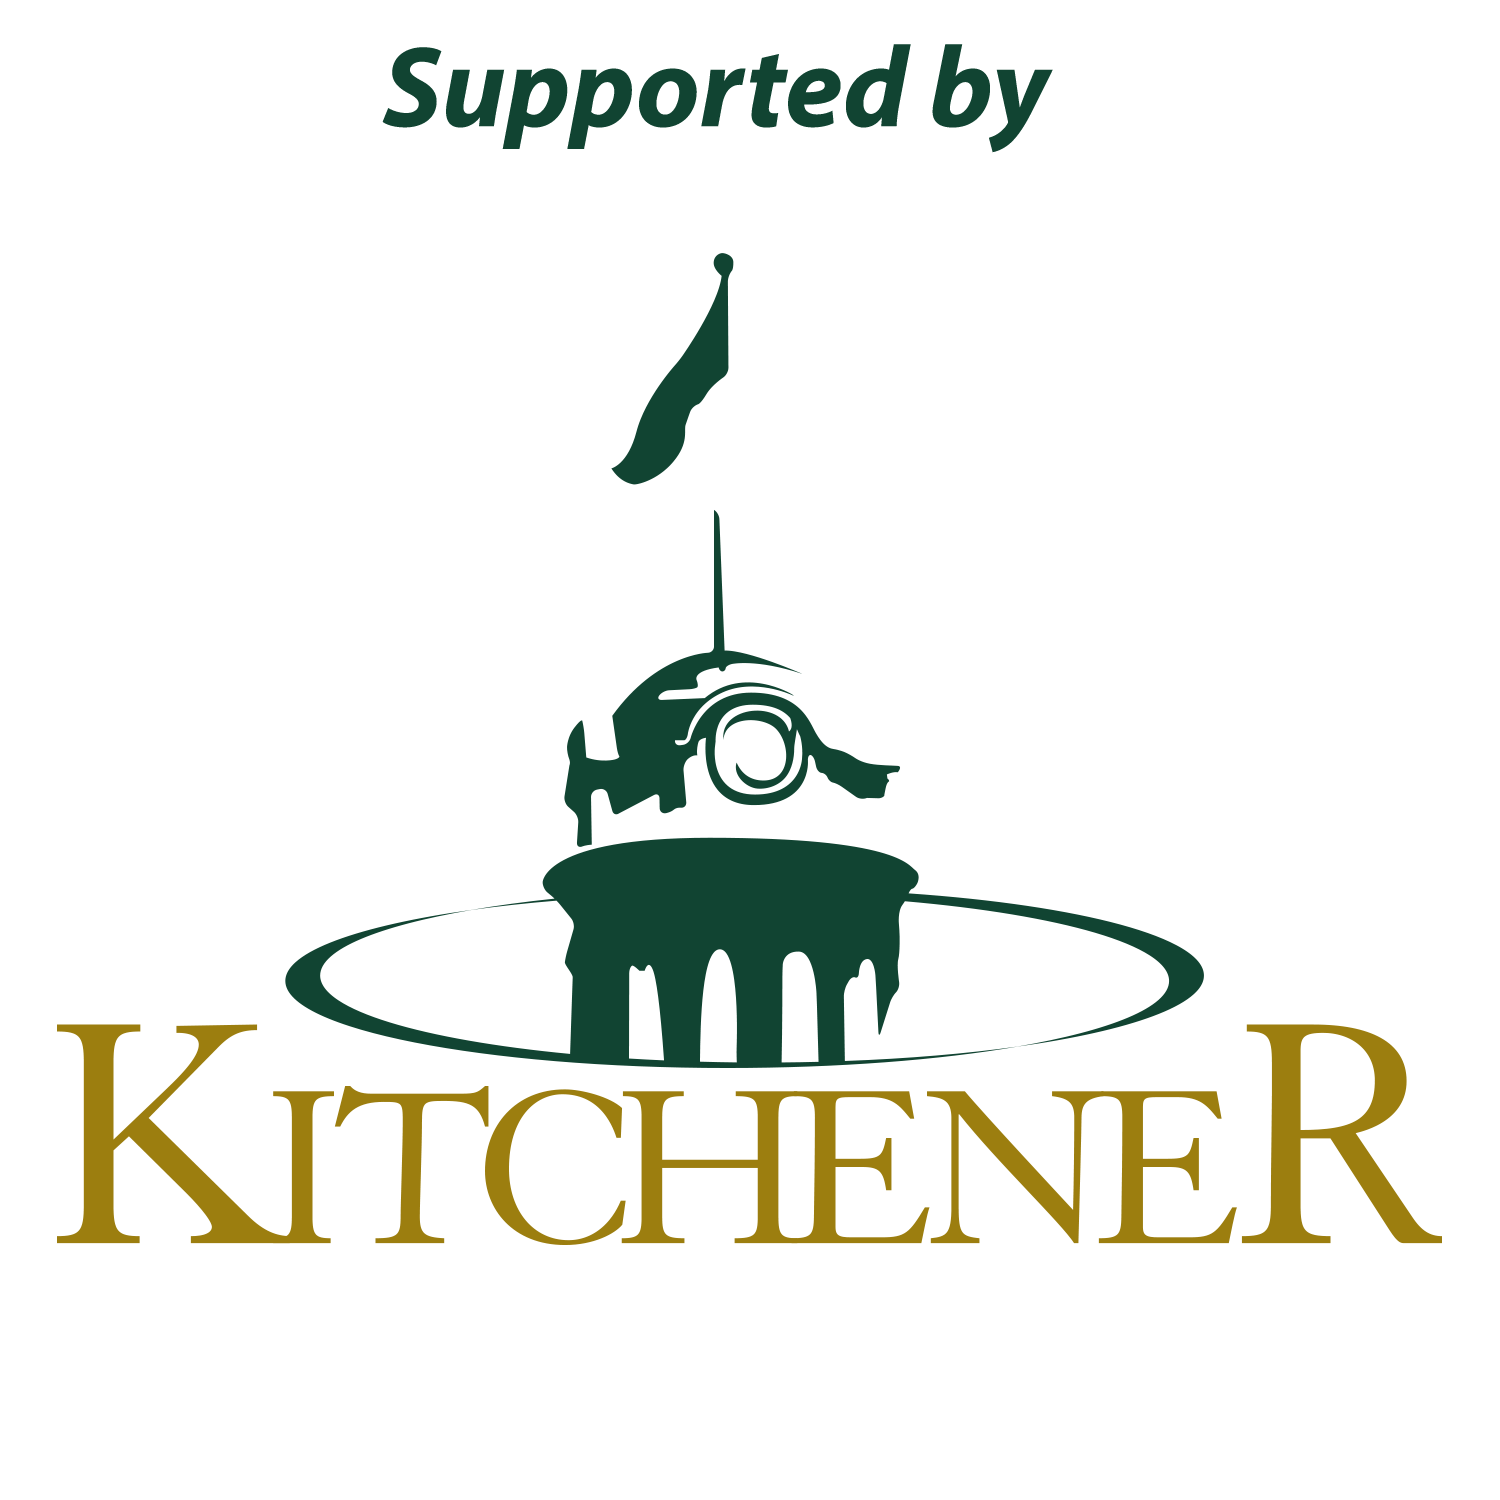 Supported by Kitchener